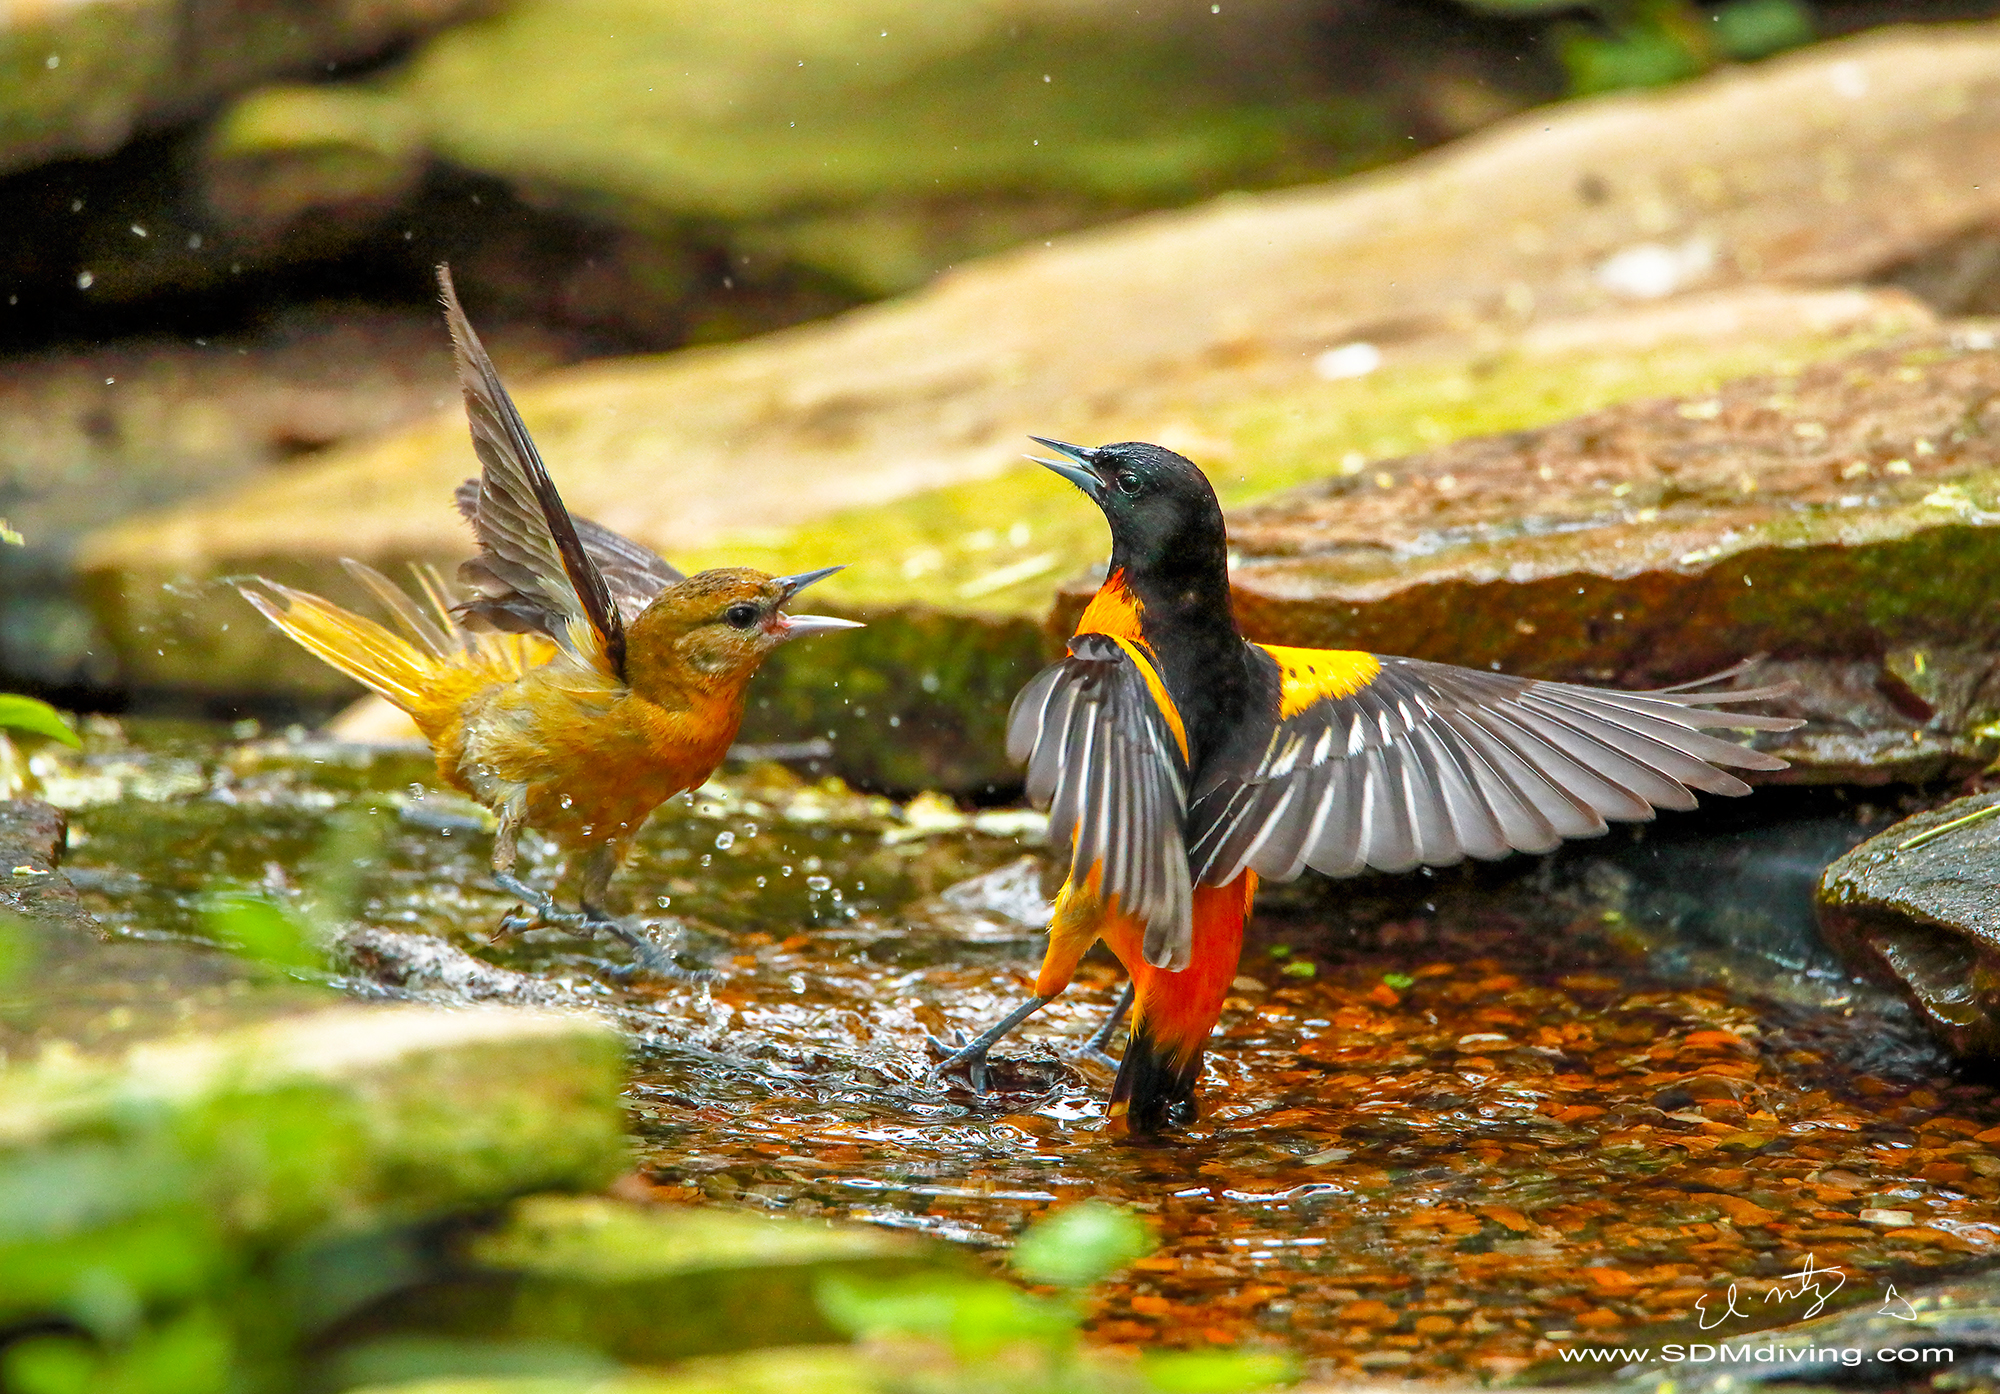 11. Male and Female Orchard Orioles arguing.